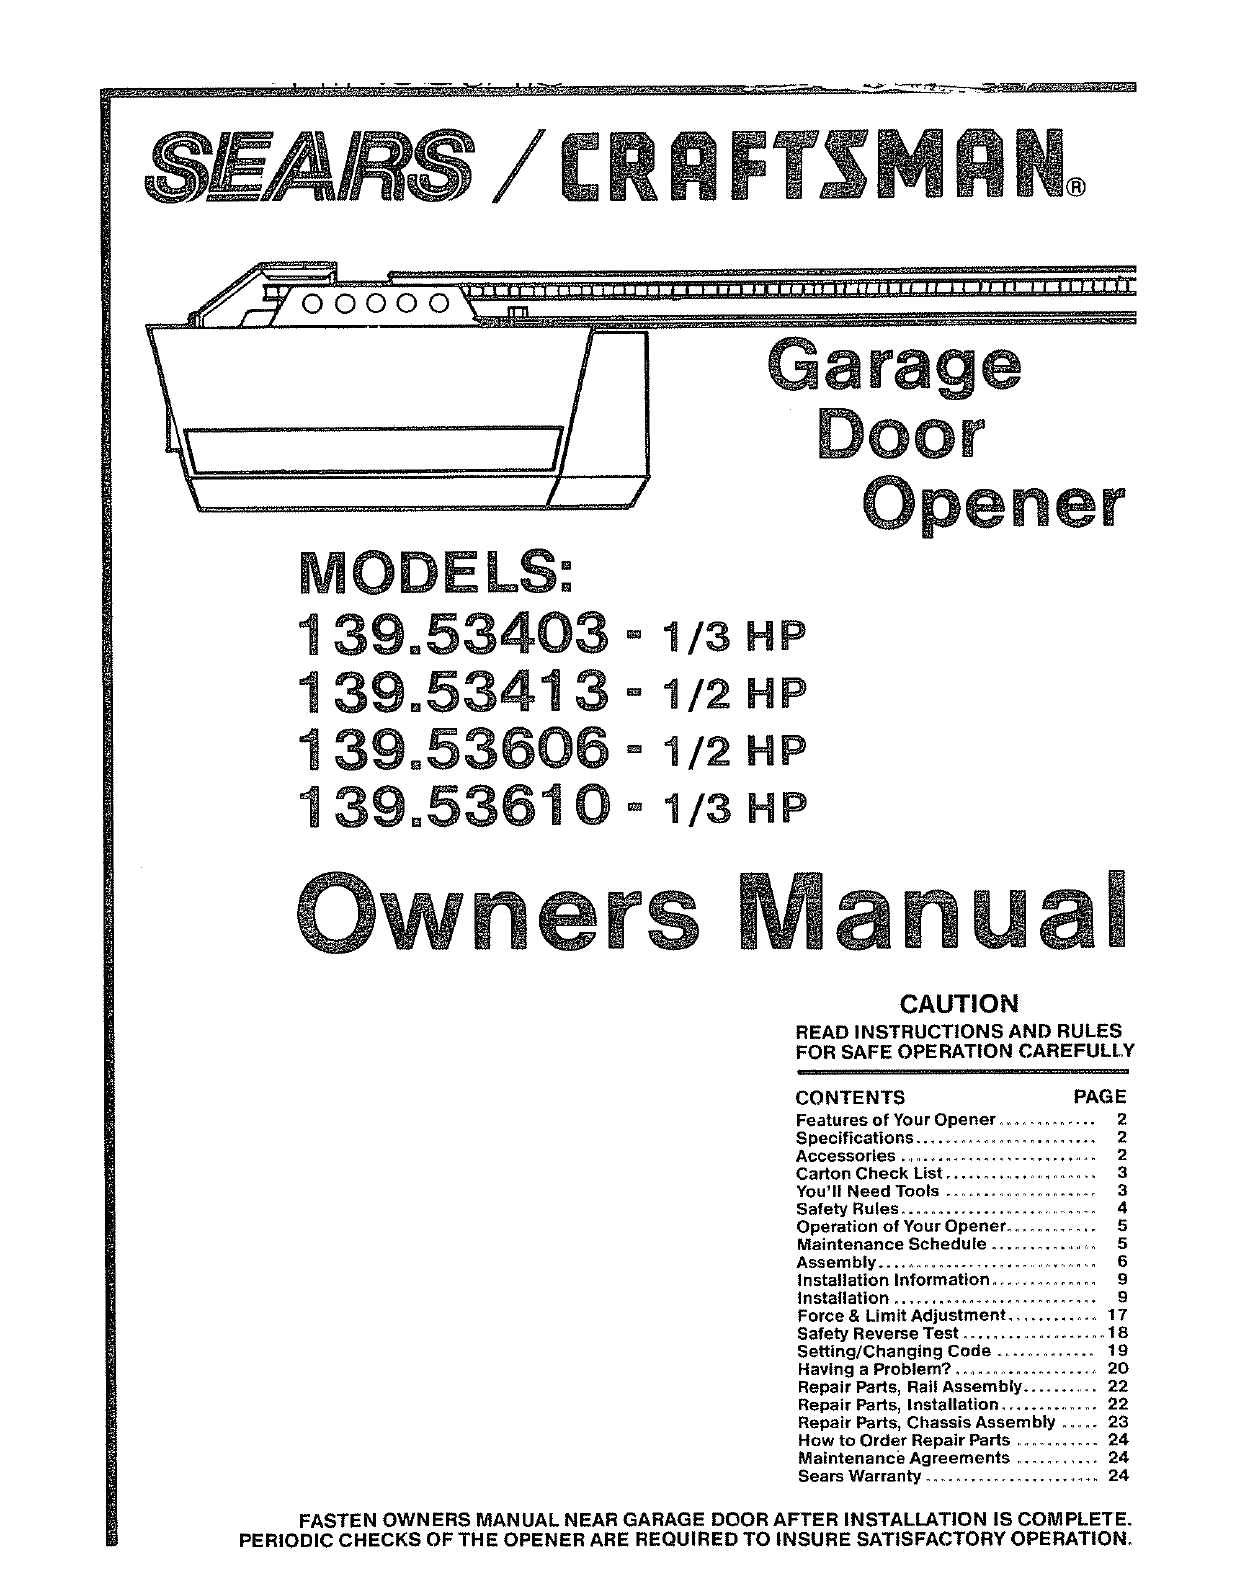 4e24e83f 95d3 4892 ae01 8deb09c598a8 bg1 craftsman garage door opener 139 53403 user guide manualsonline com wiring diagram for craftsman garage door opener at webbmarketing.co